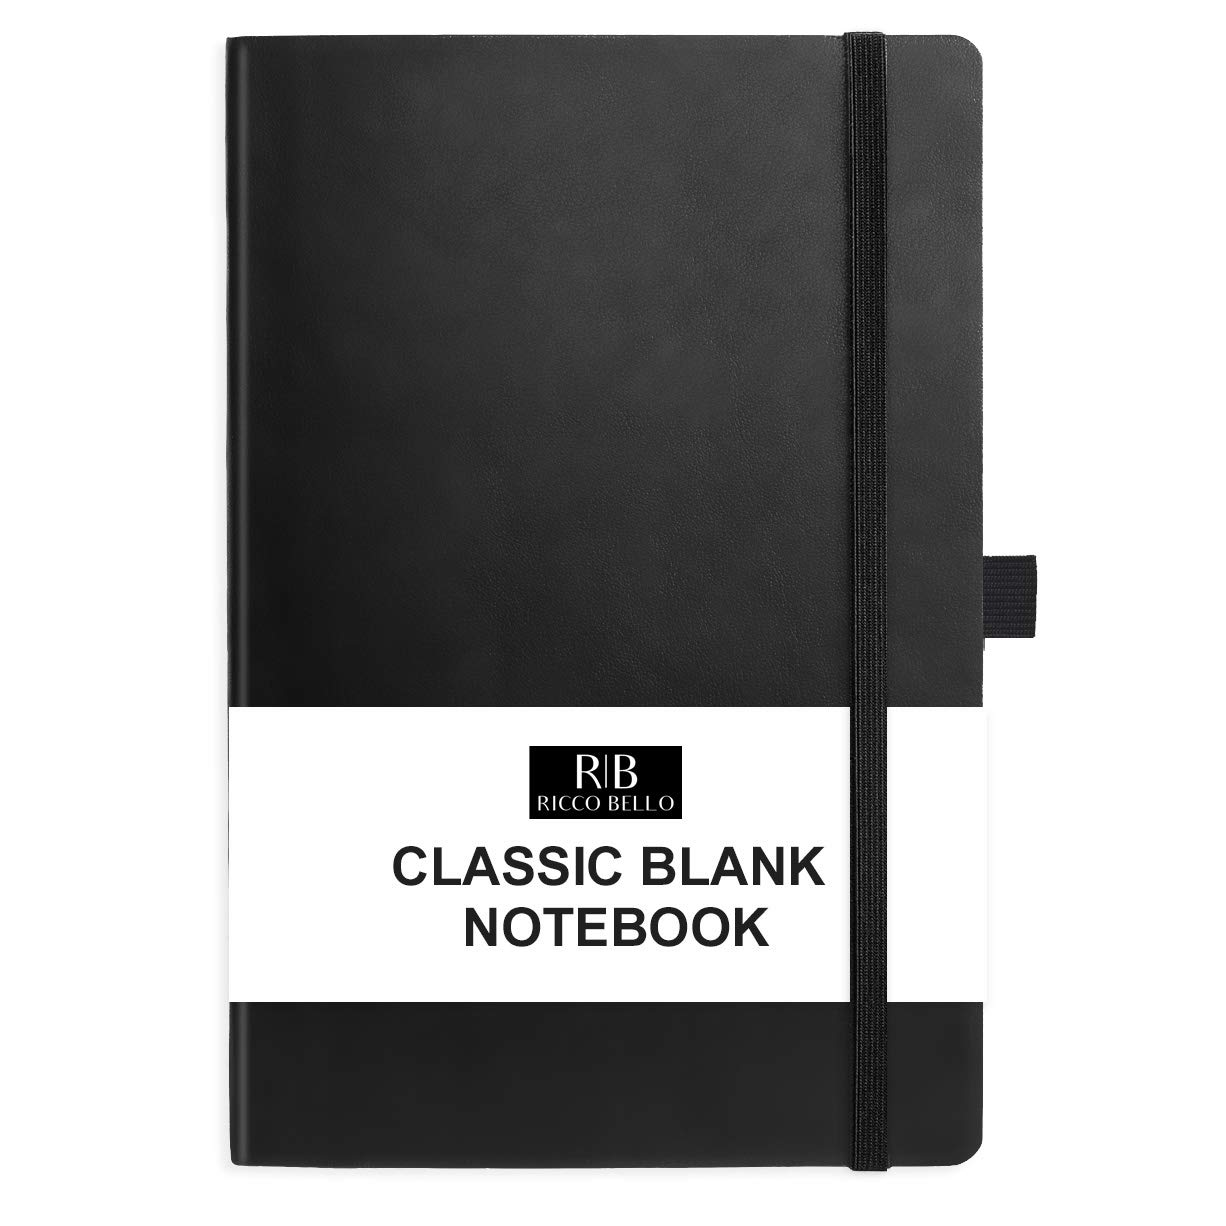 RICCO BELLO Hardcover Sketchbook and Writing Journal Notebook, Blank Unruled Plain Pages with Writing Guide, Fountain Pen Friendly Thick Paper 5.7 x 8.4 inches (Black)